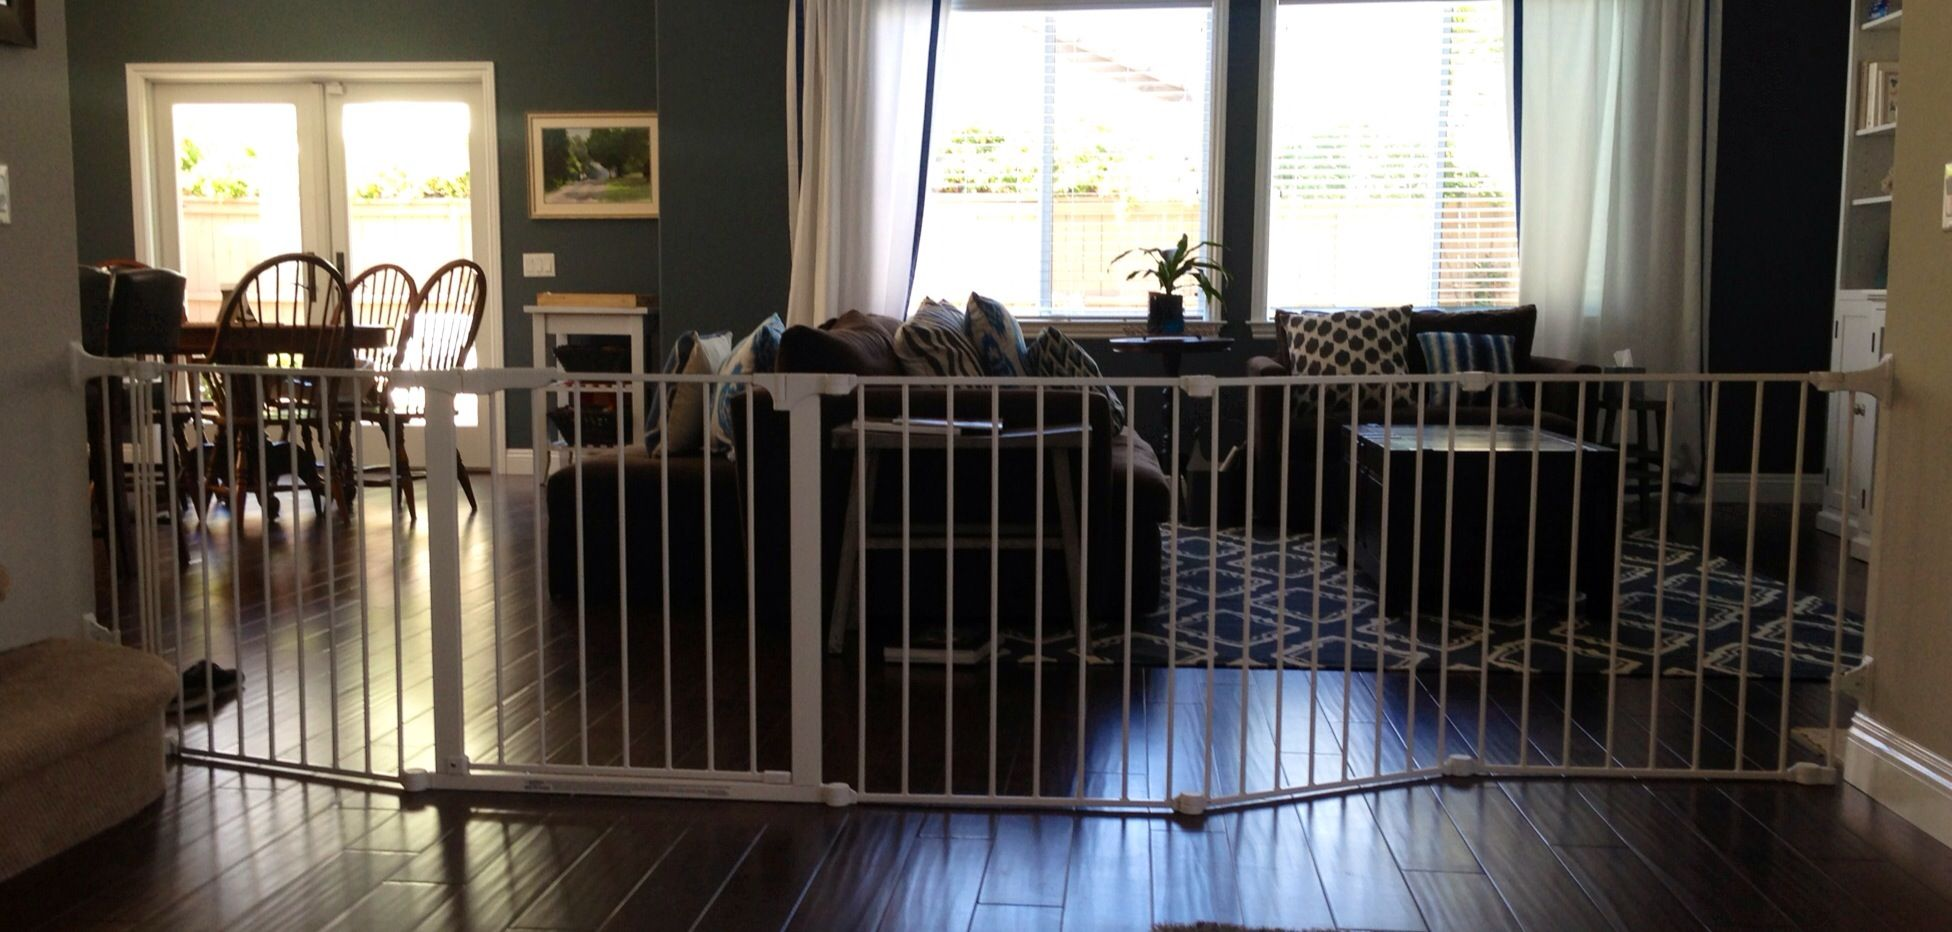 Pin by Emily Boege on babyproof! Retractable baby gate